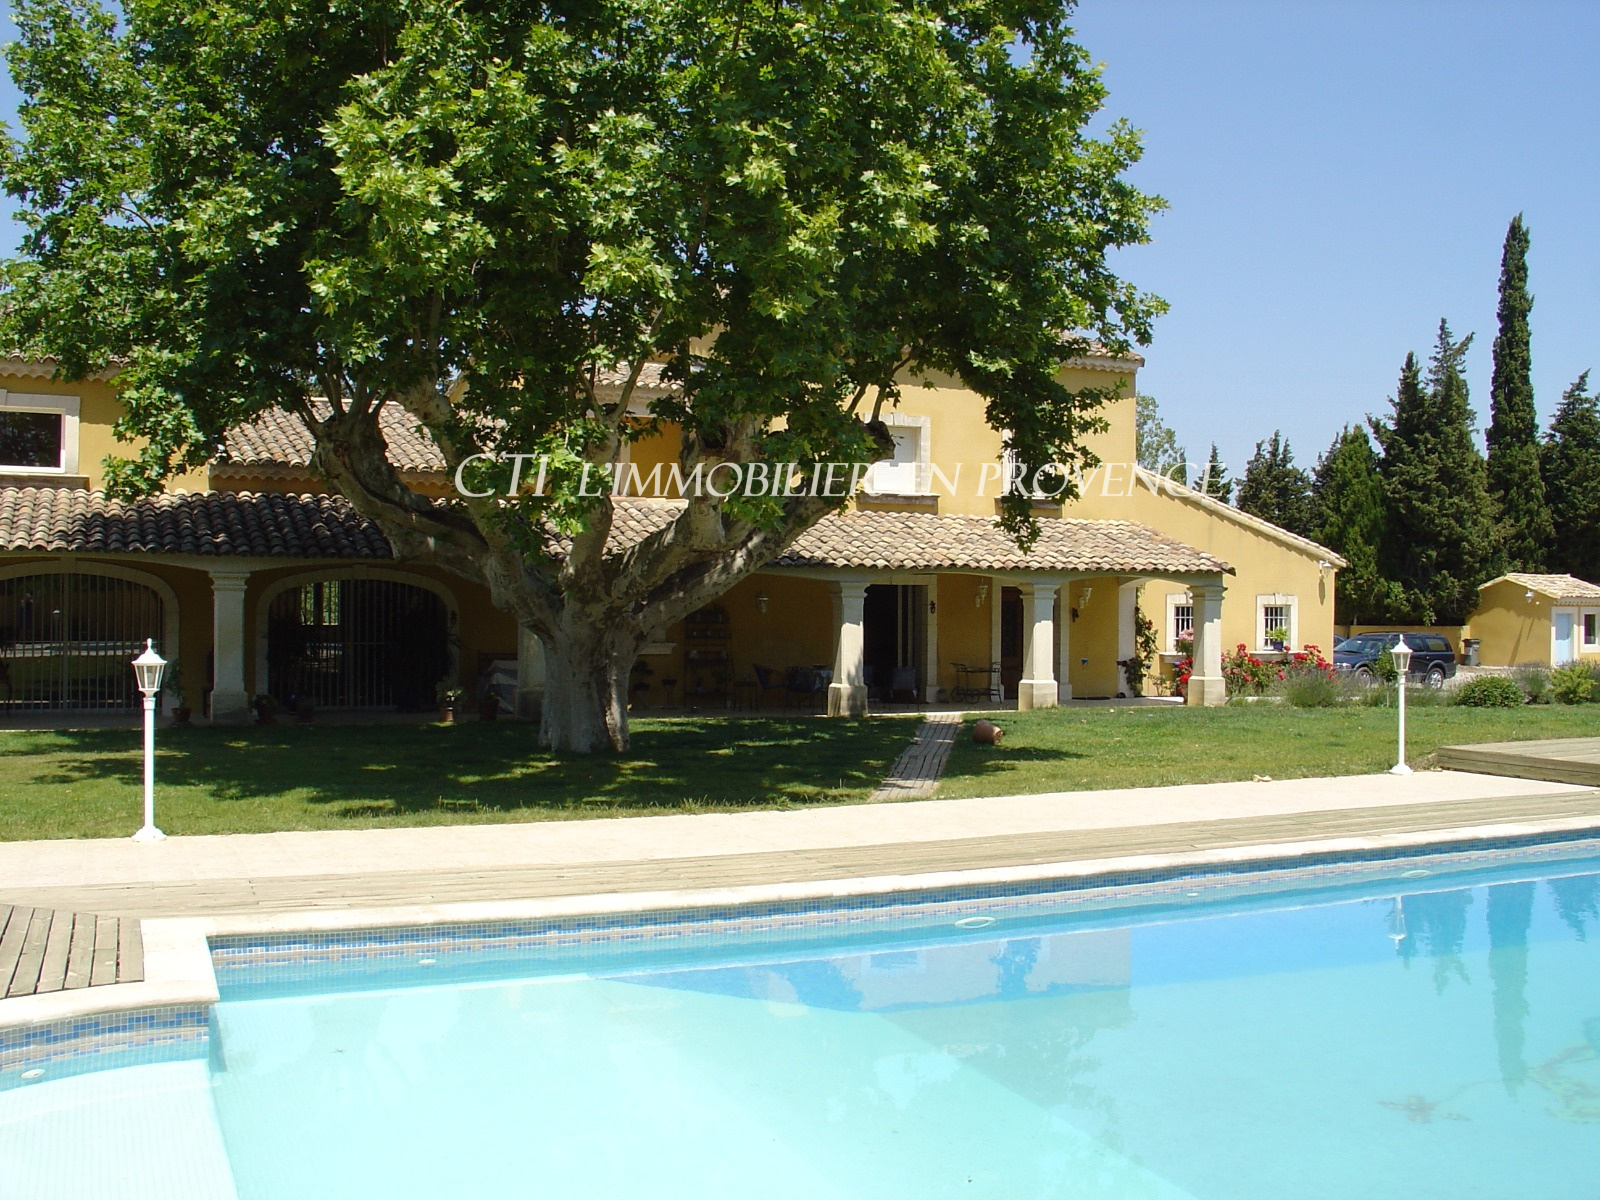 18th century property near Avignon